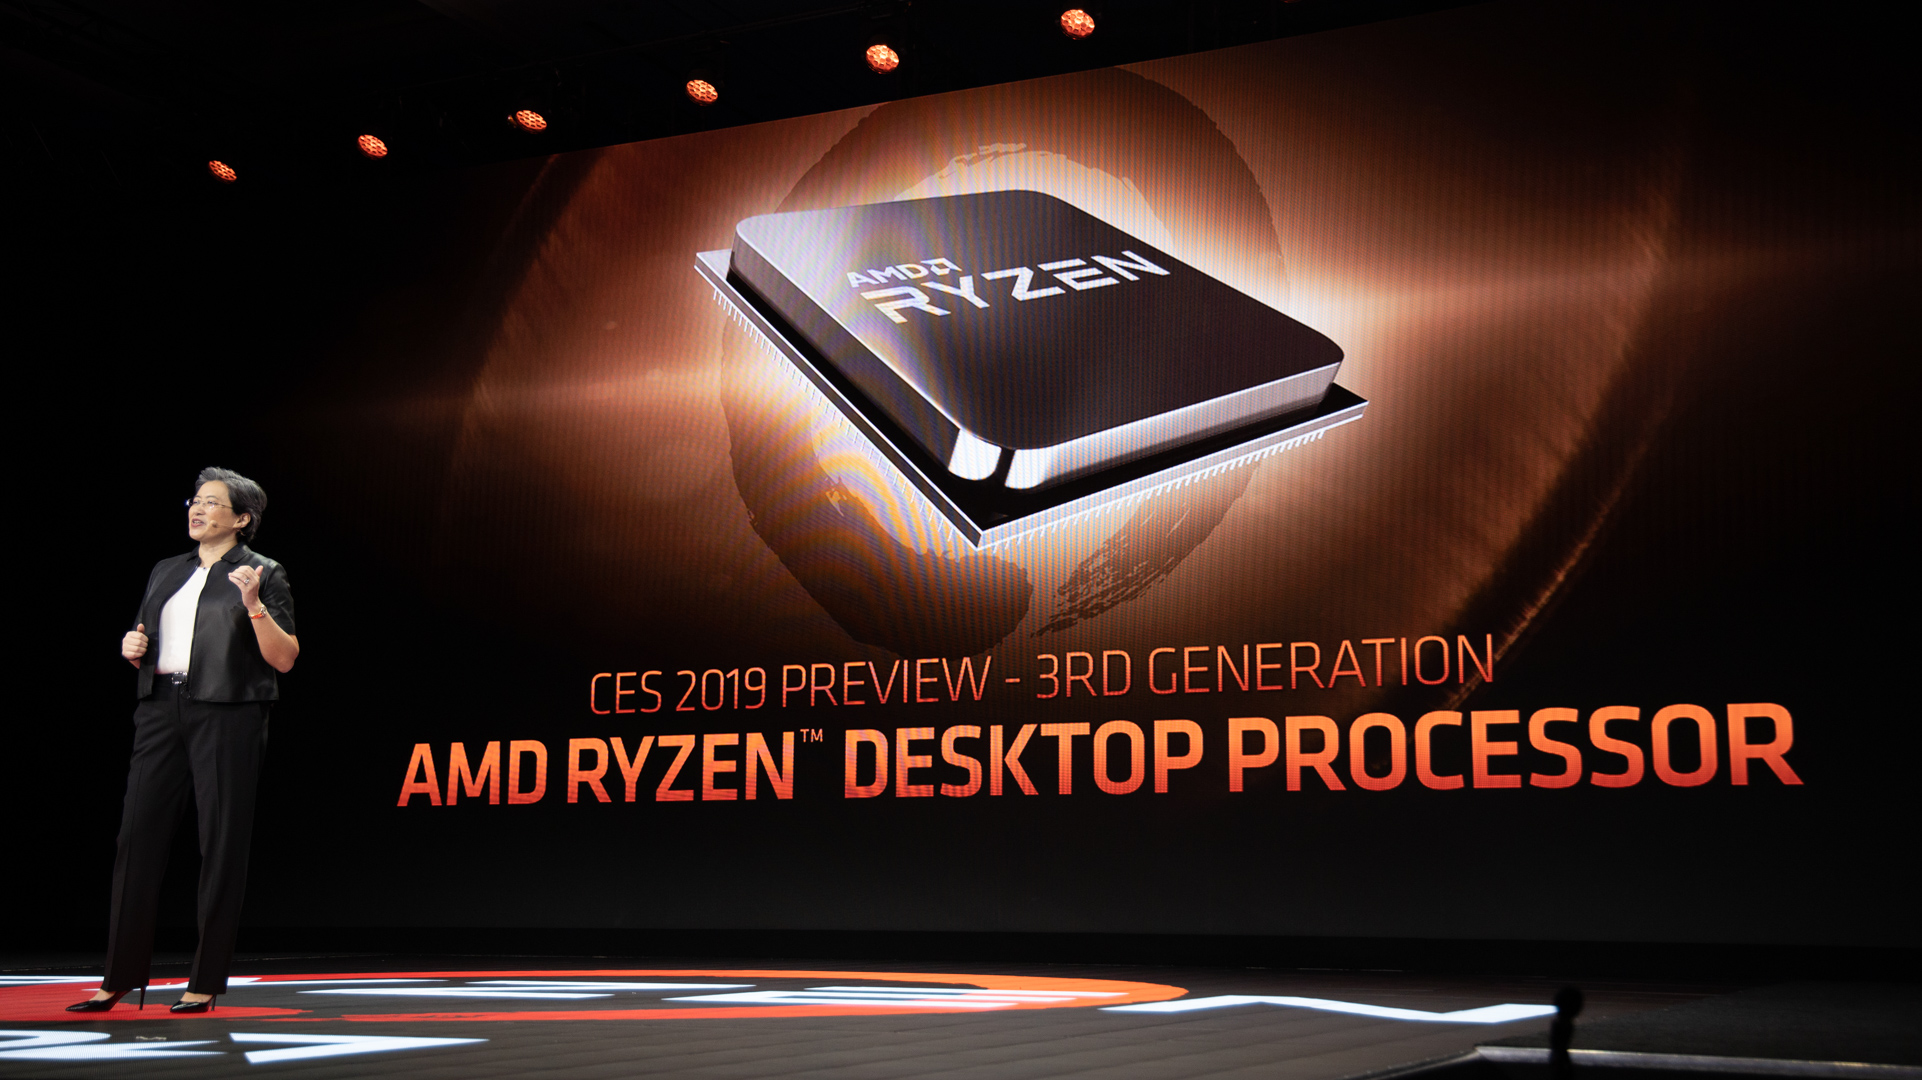 Hybrid processors at CES 2019 are the future of computing hybrid-processors-at-ces-2019-are-the-future-of-computing